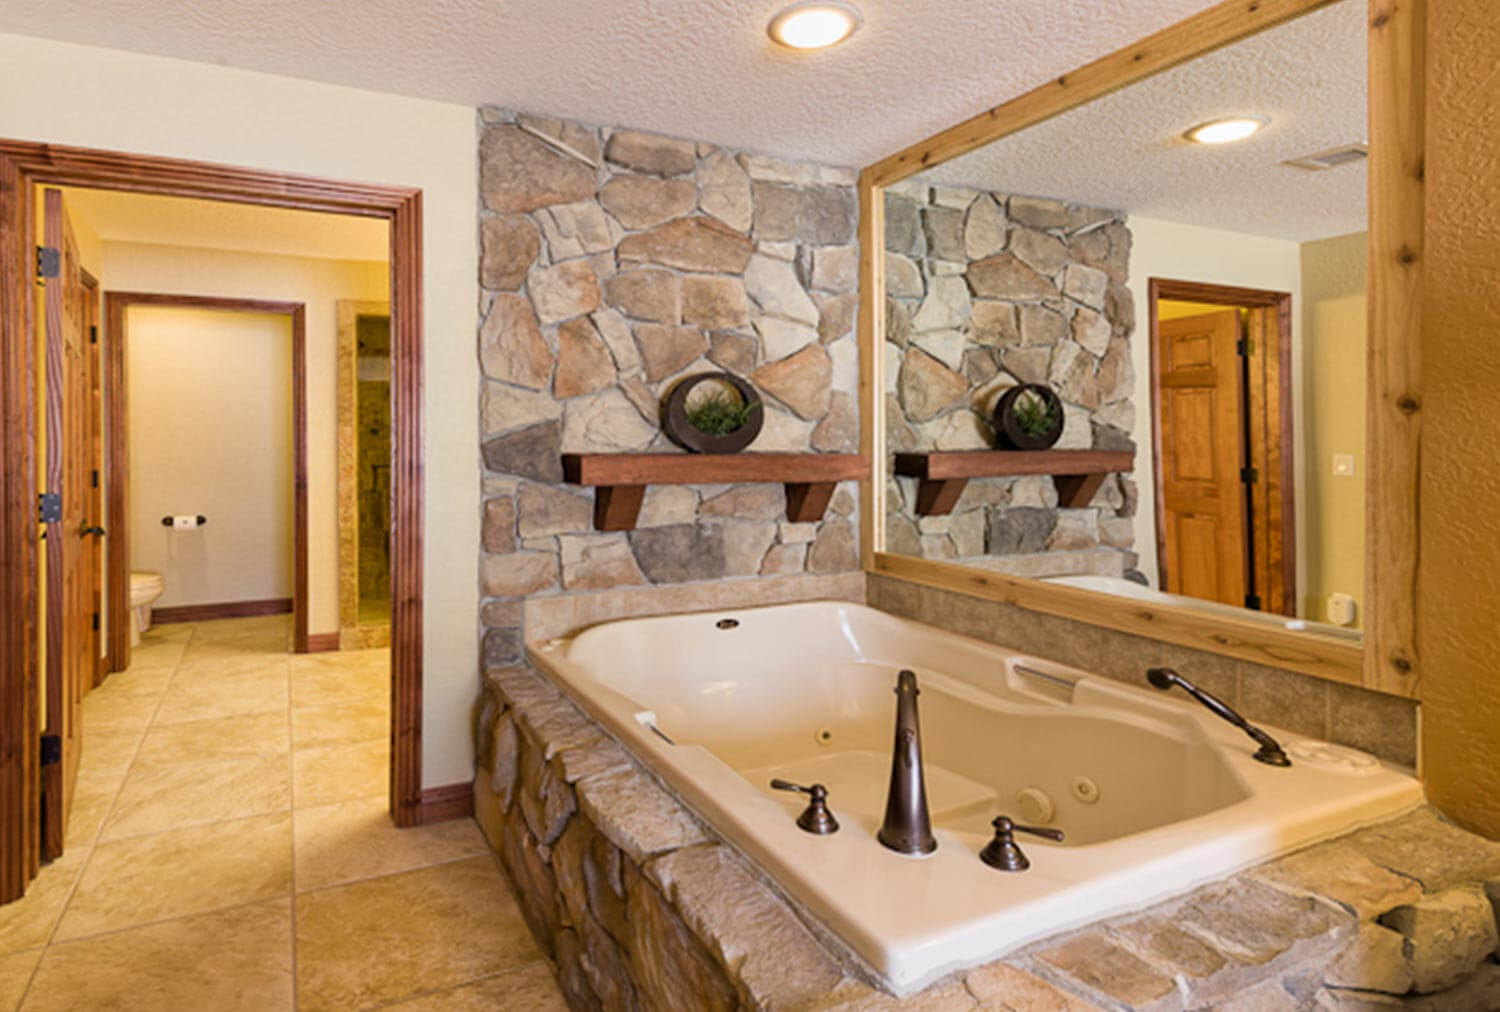 Luxury One-Bedroom Villa Bathtub in our Park City Ski Resort in Utah | Westgate Park City Resort & Spa | Westgate Resorts